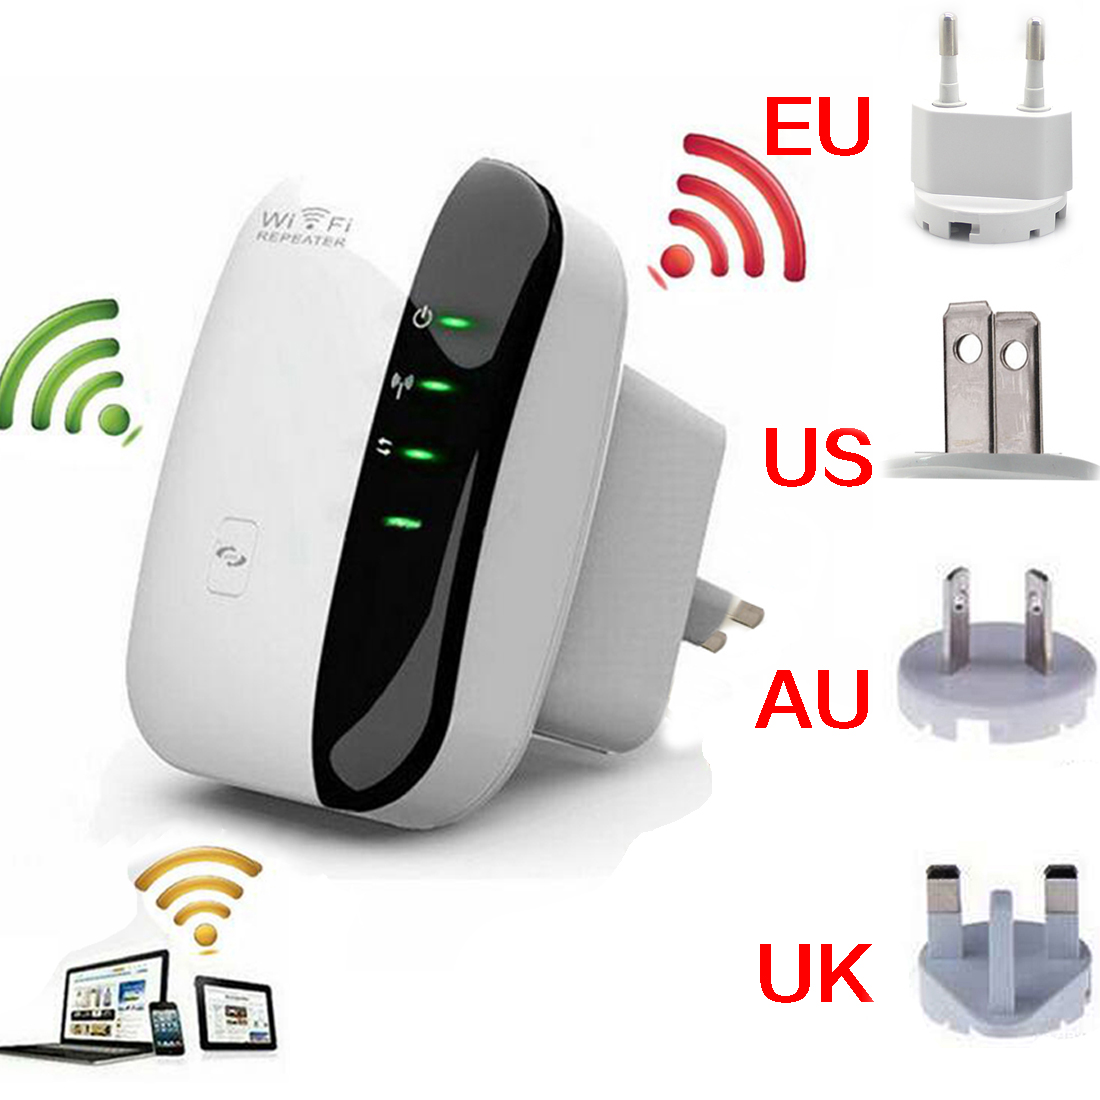 NOYOKERE wireless-n wi-fi repetidor 802.11n/b/g Red Wi Fi Routers 300 Mbps Range Expander señal booster Extender WIFI